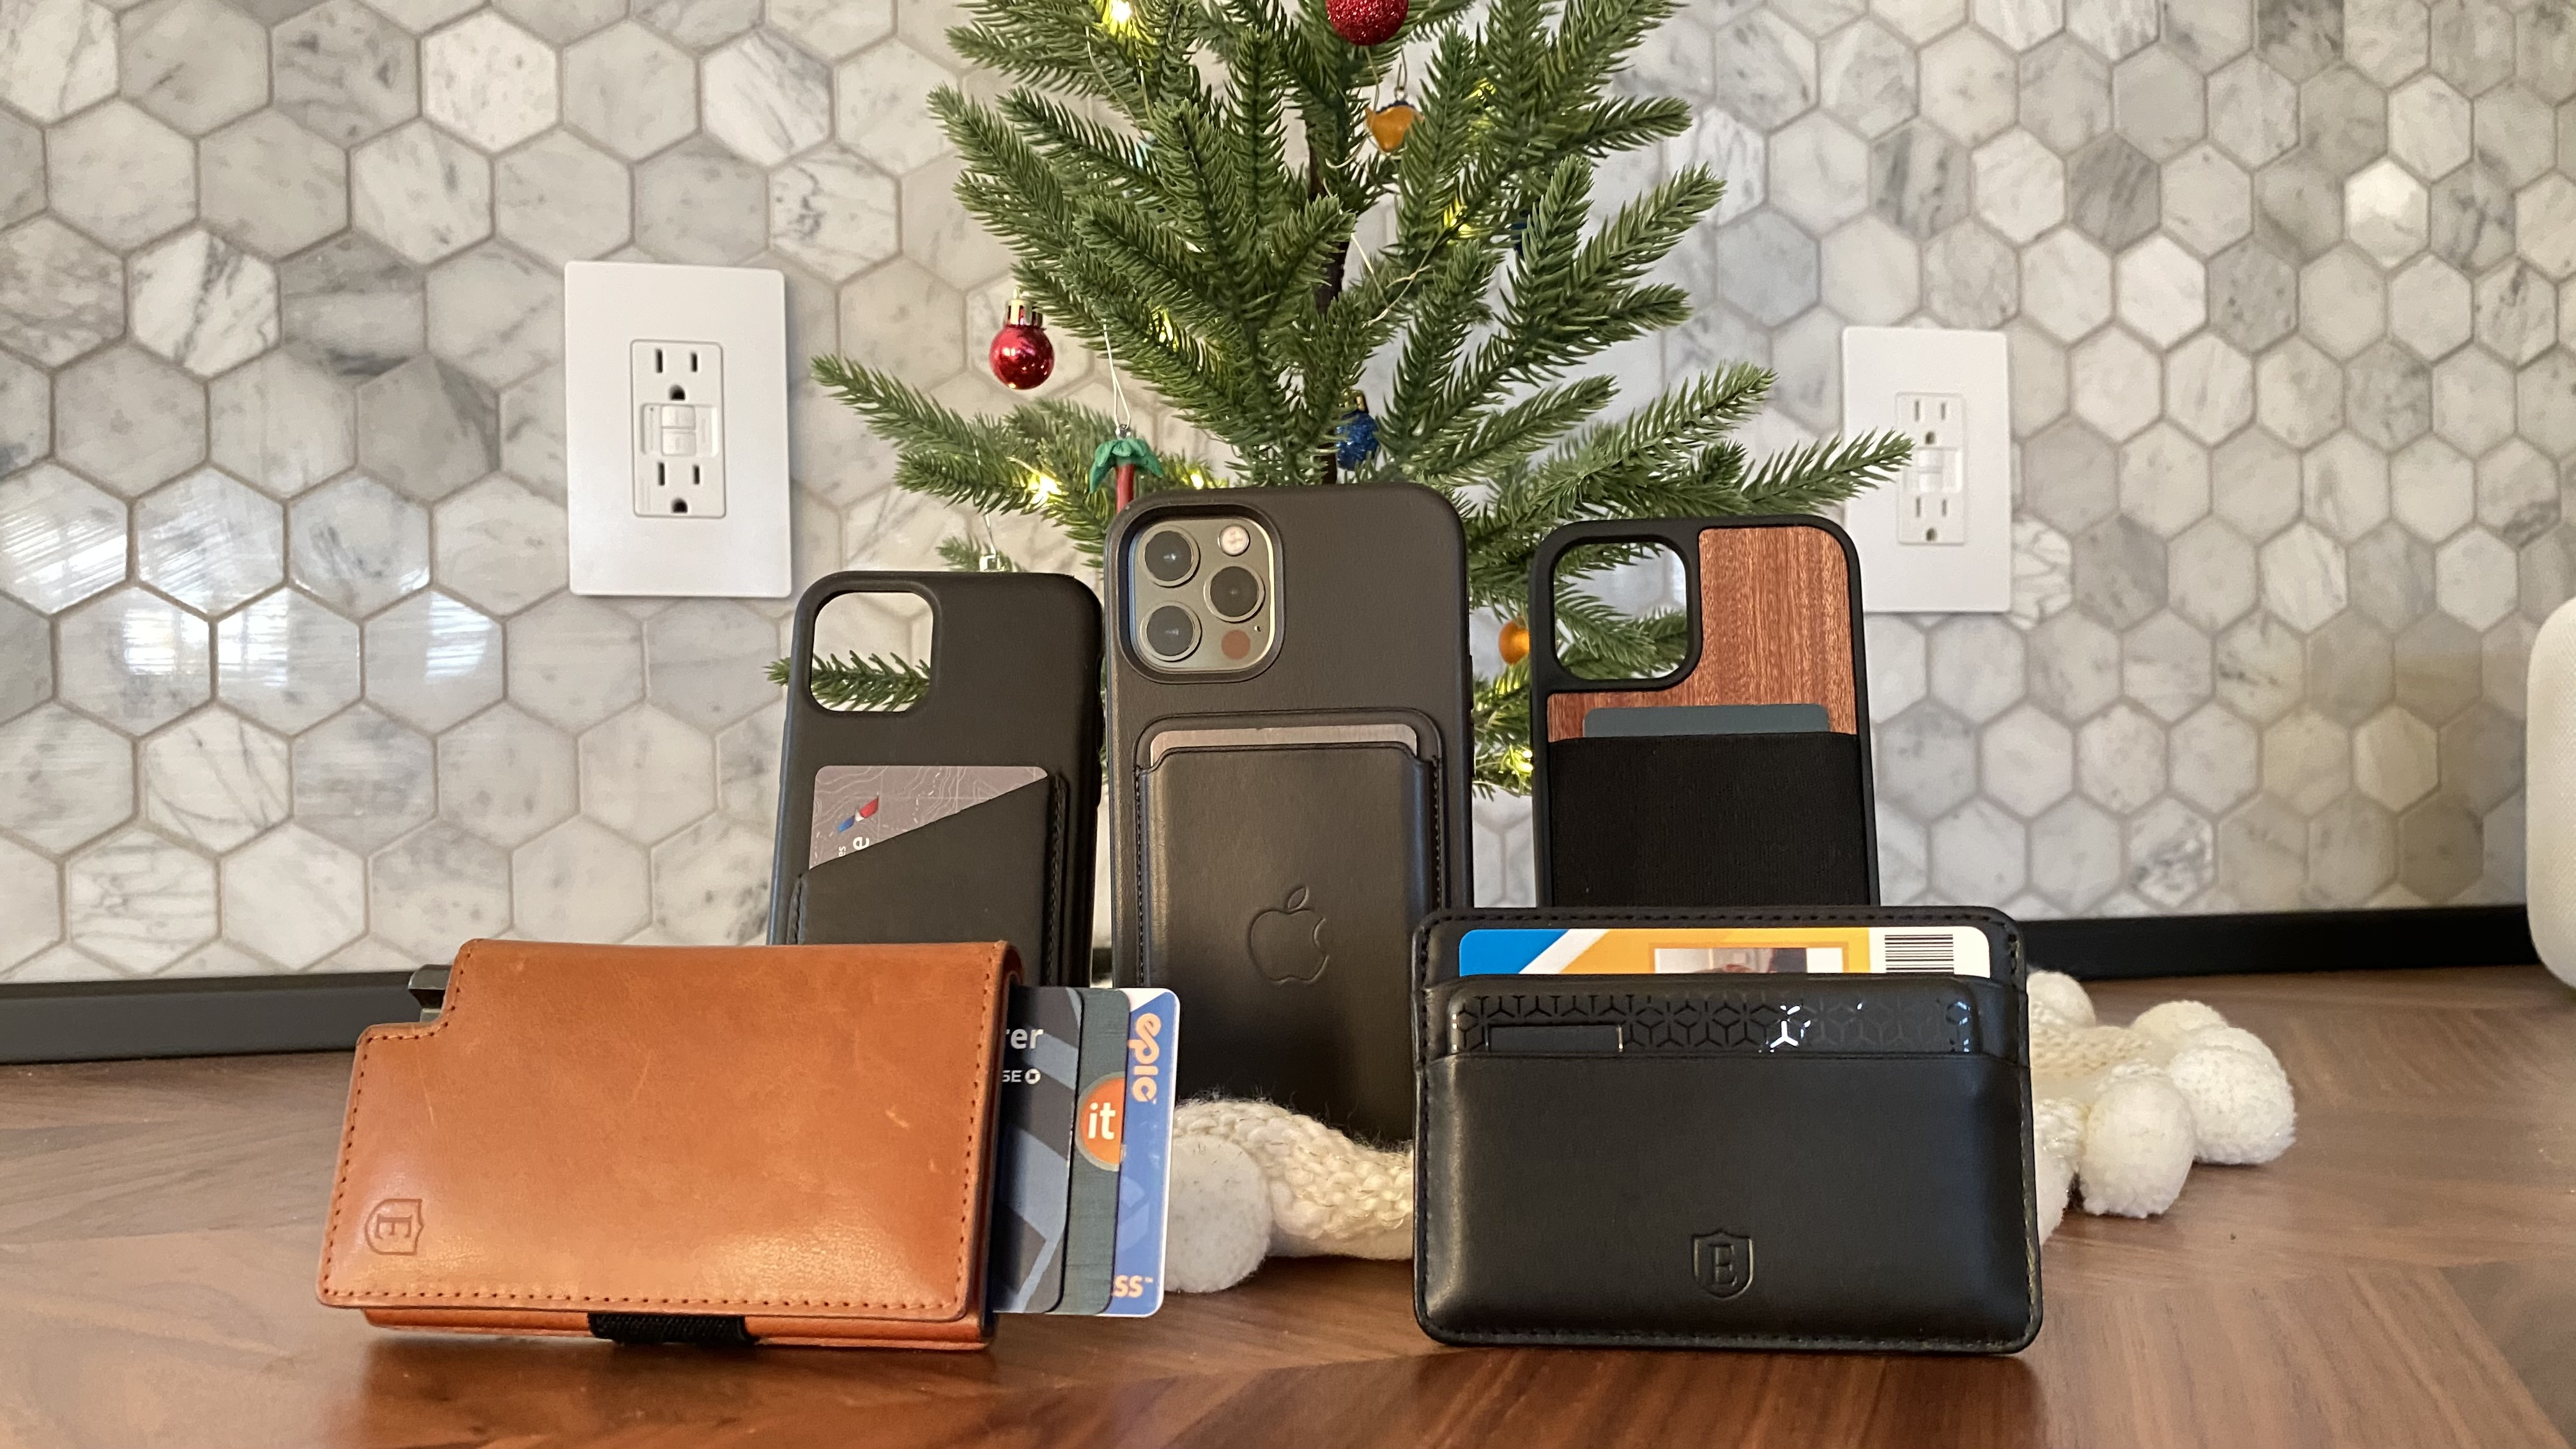 iPhone wallets gift guide smart wallets, more